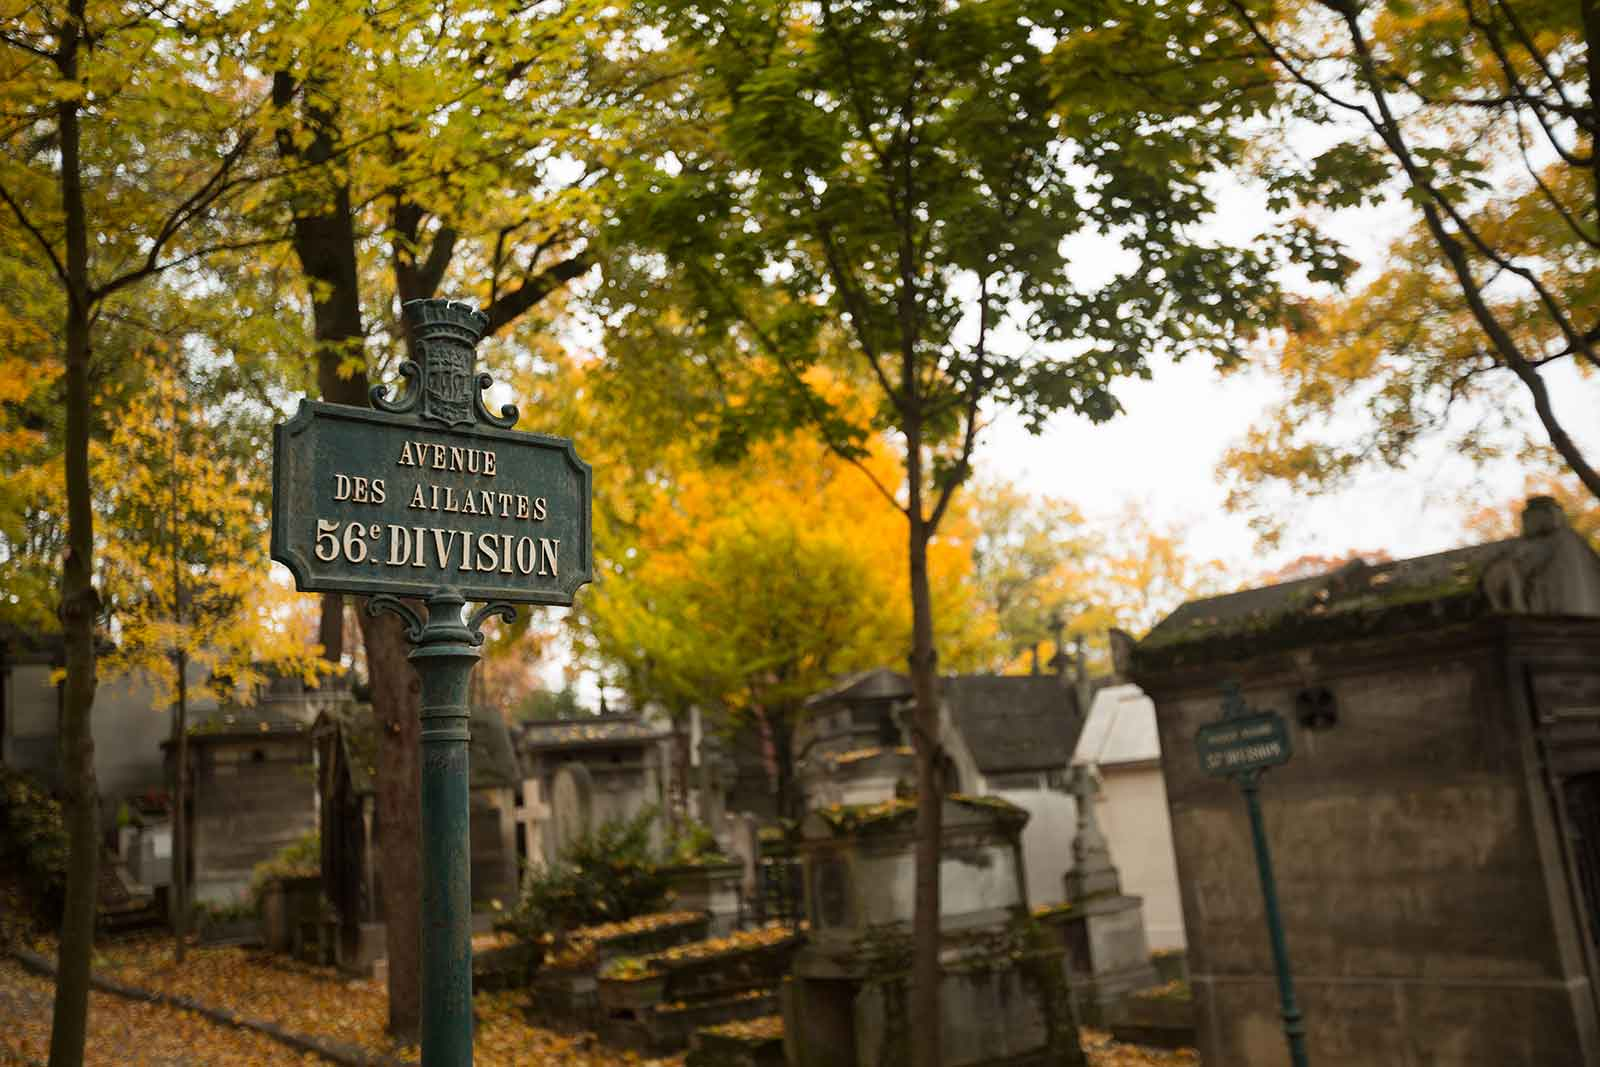 Pere Lachaise is laid out in numbered divisions, and the divisions are separated by roads and paths.